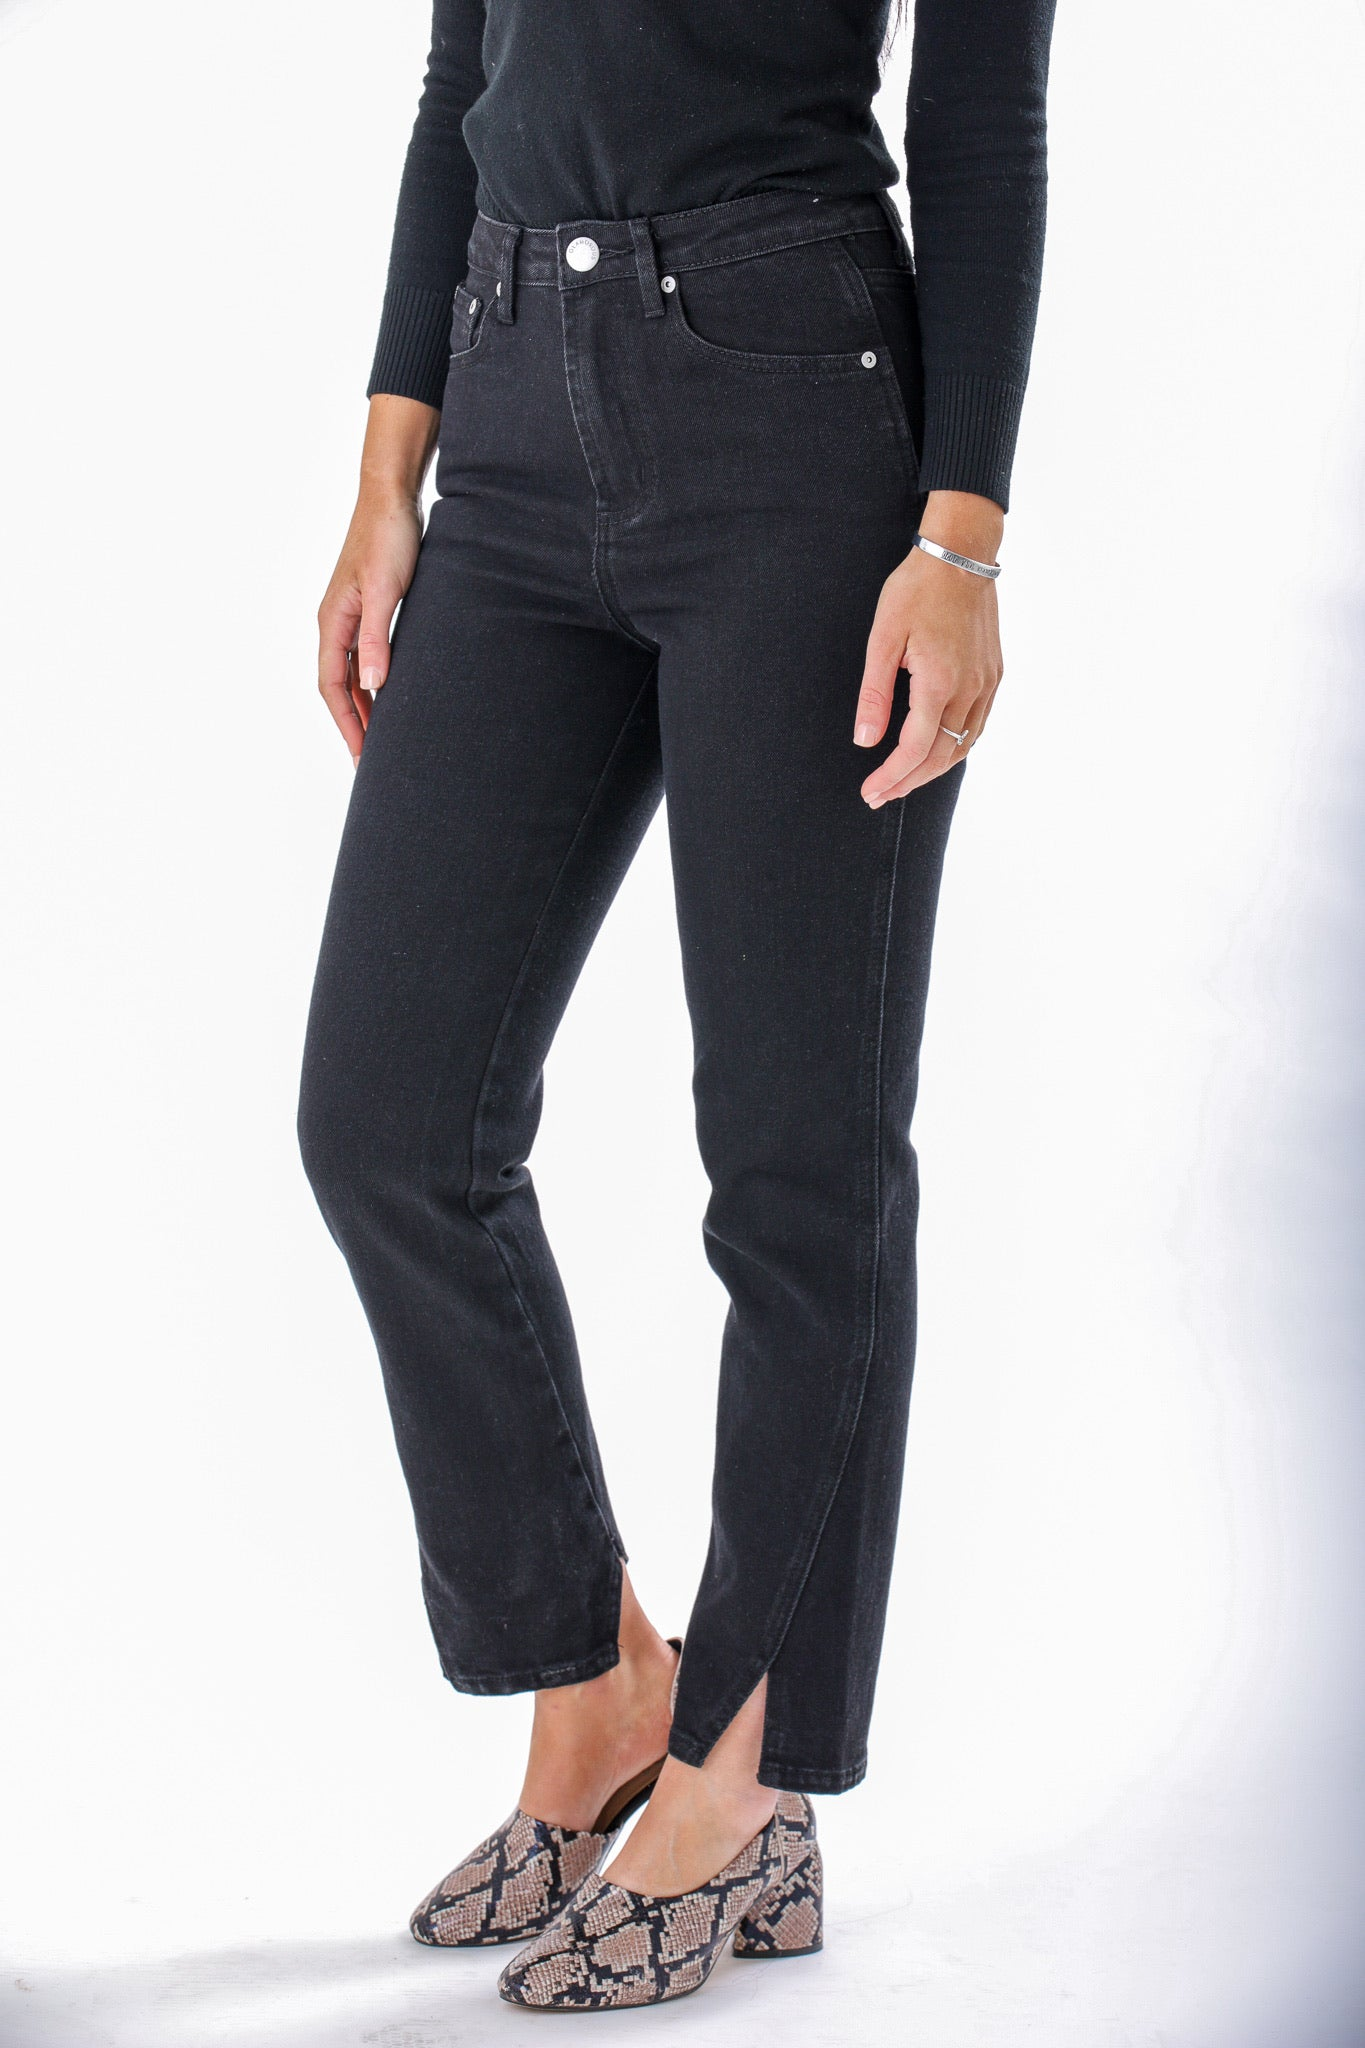 Dark of Night High Rise Jeans - Pants - Wight Elephant Boutique